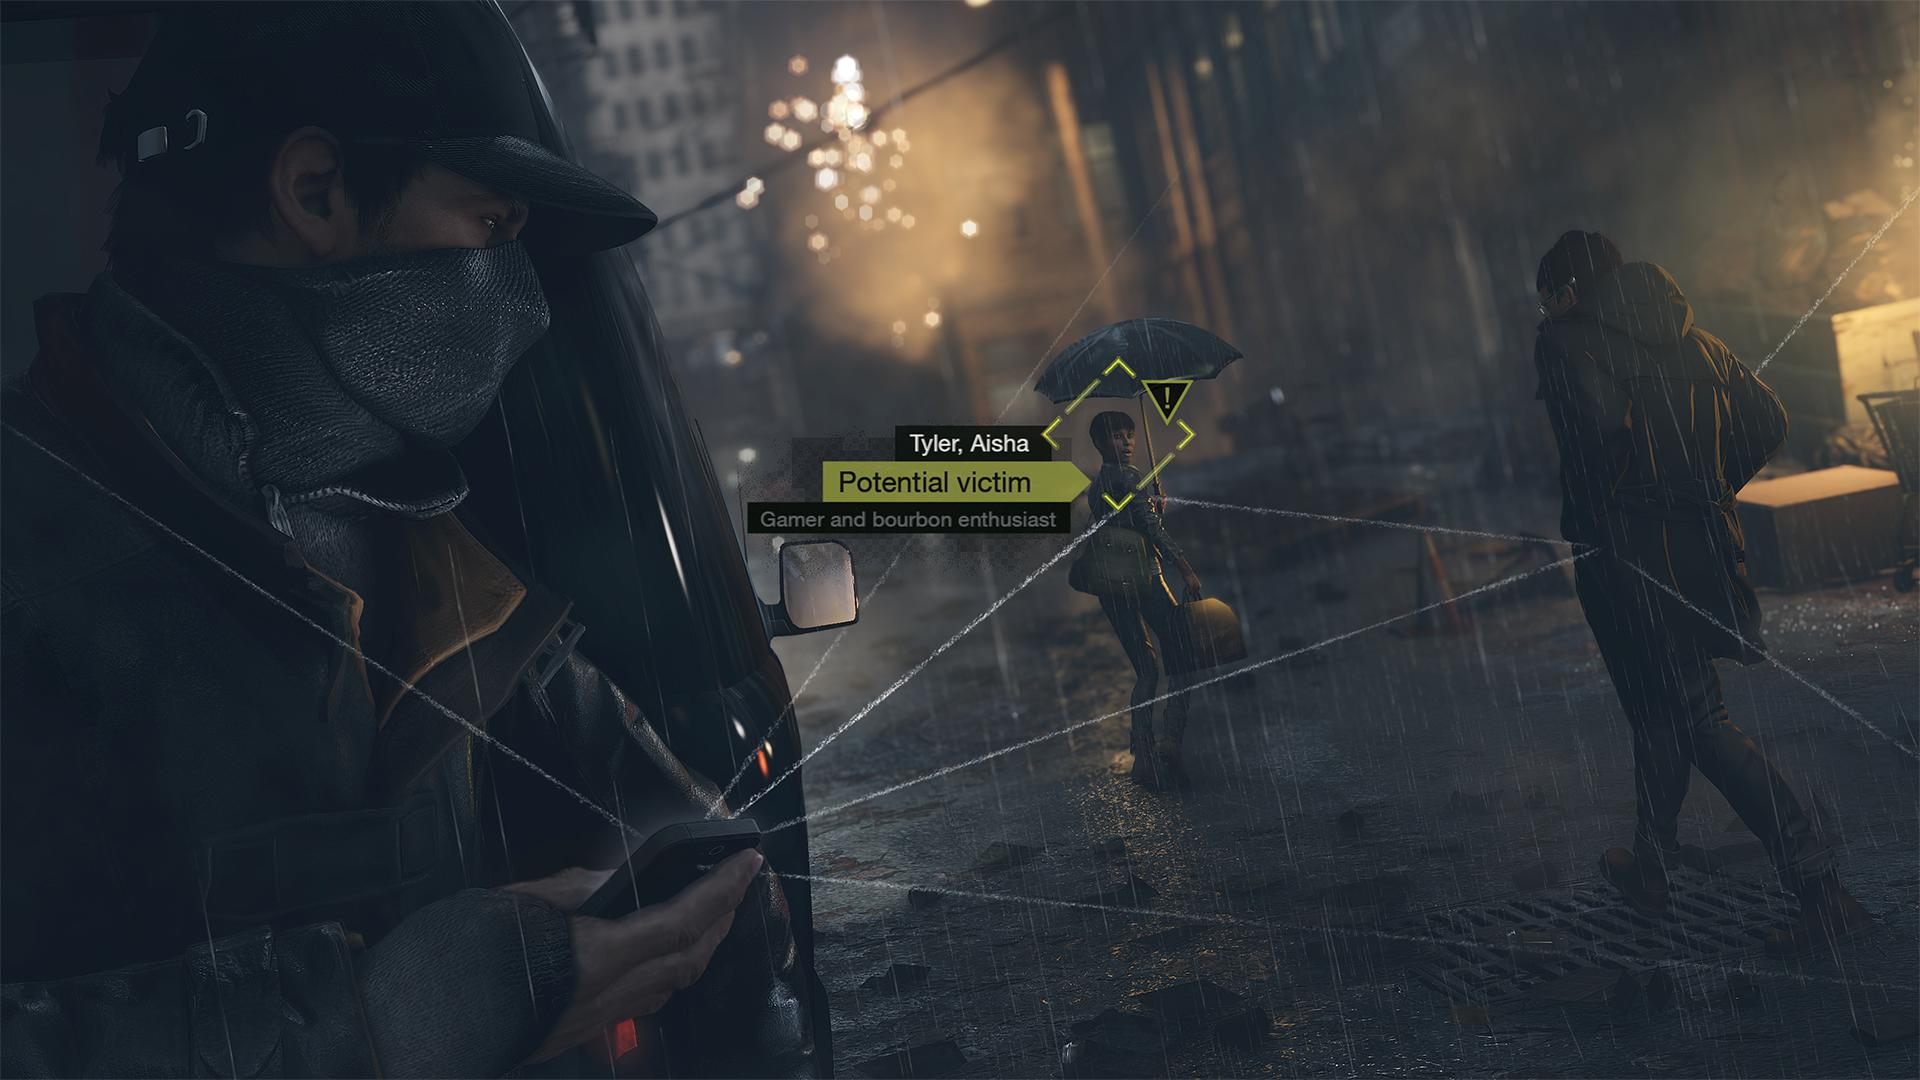 watch-dogs-aisha-tyler-back-alley-assault